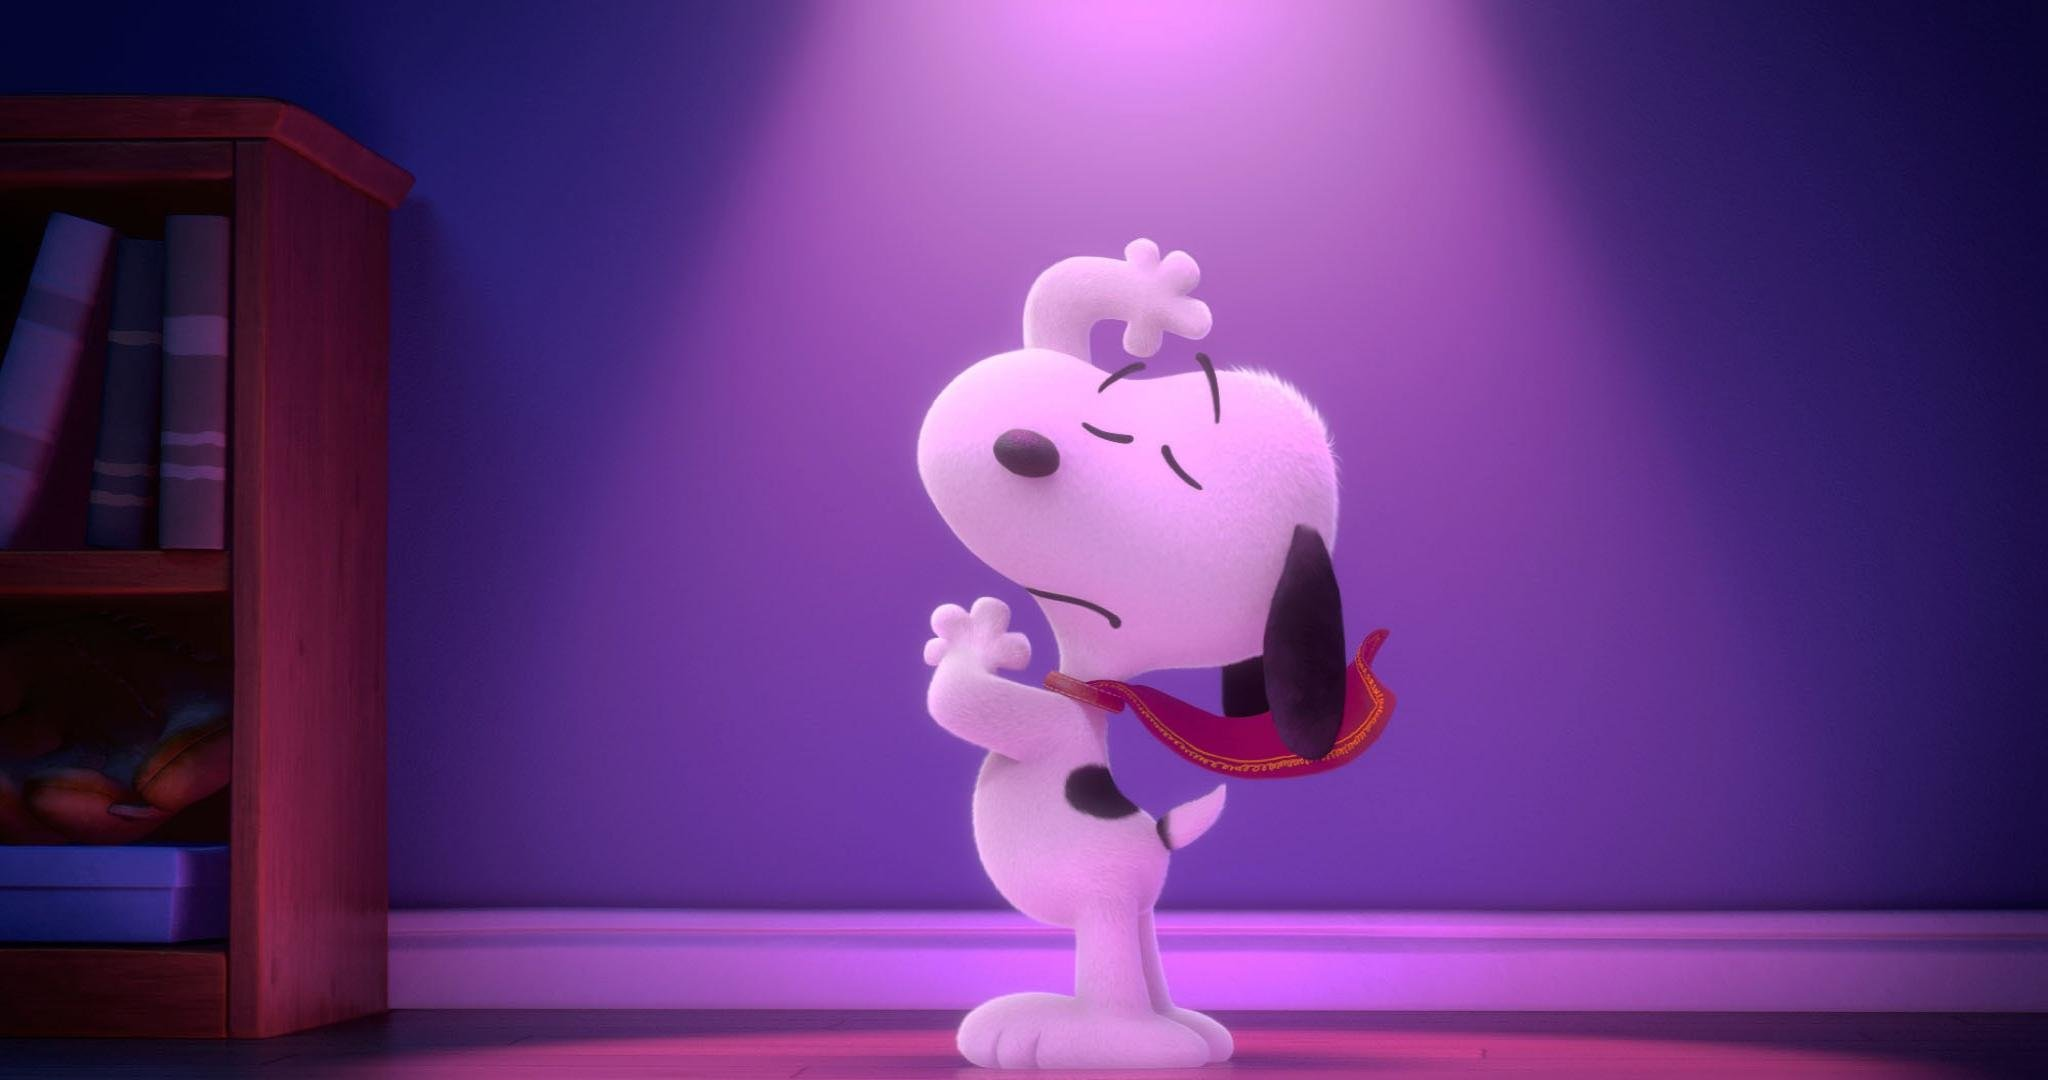 Free Download Snoopy Wallpaper Id 111549 Hd 2048x1080 For Computer